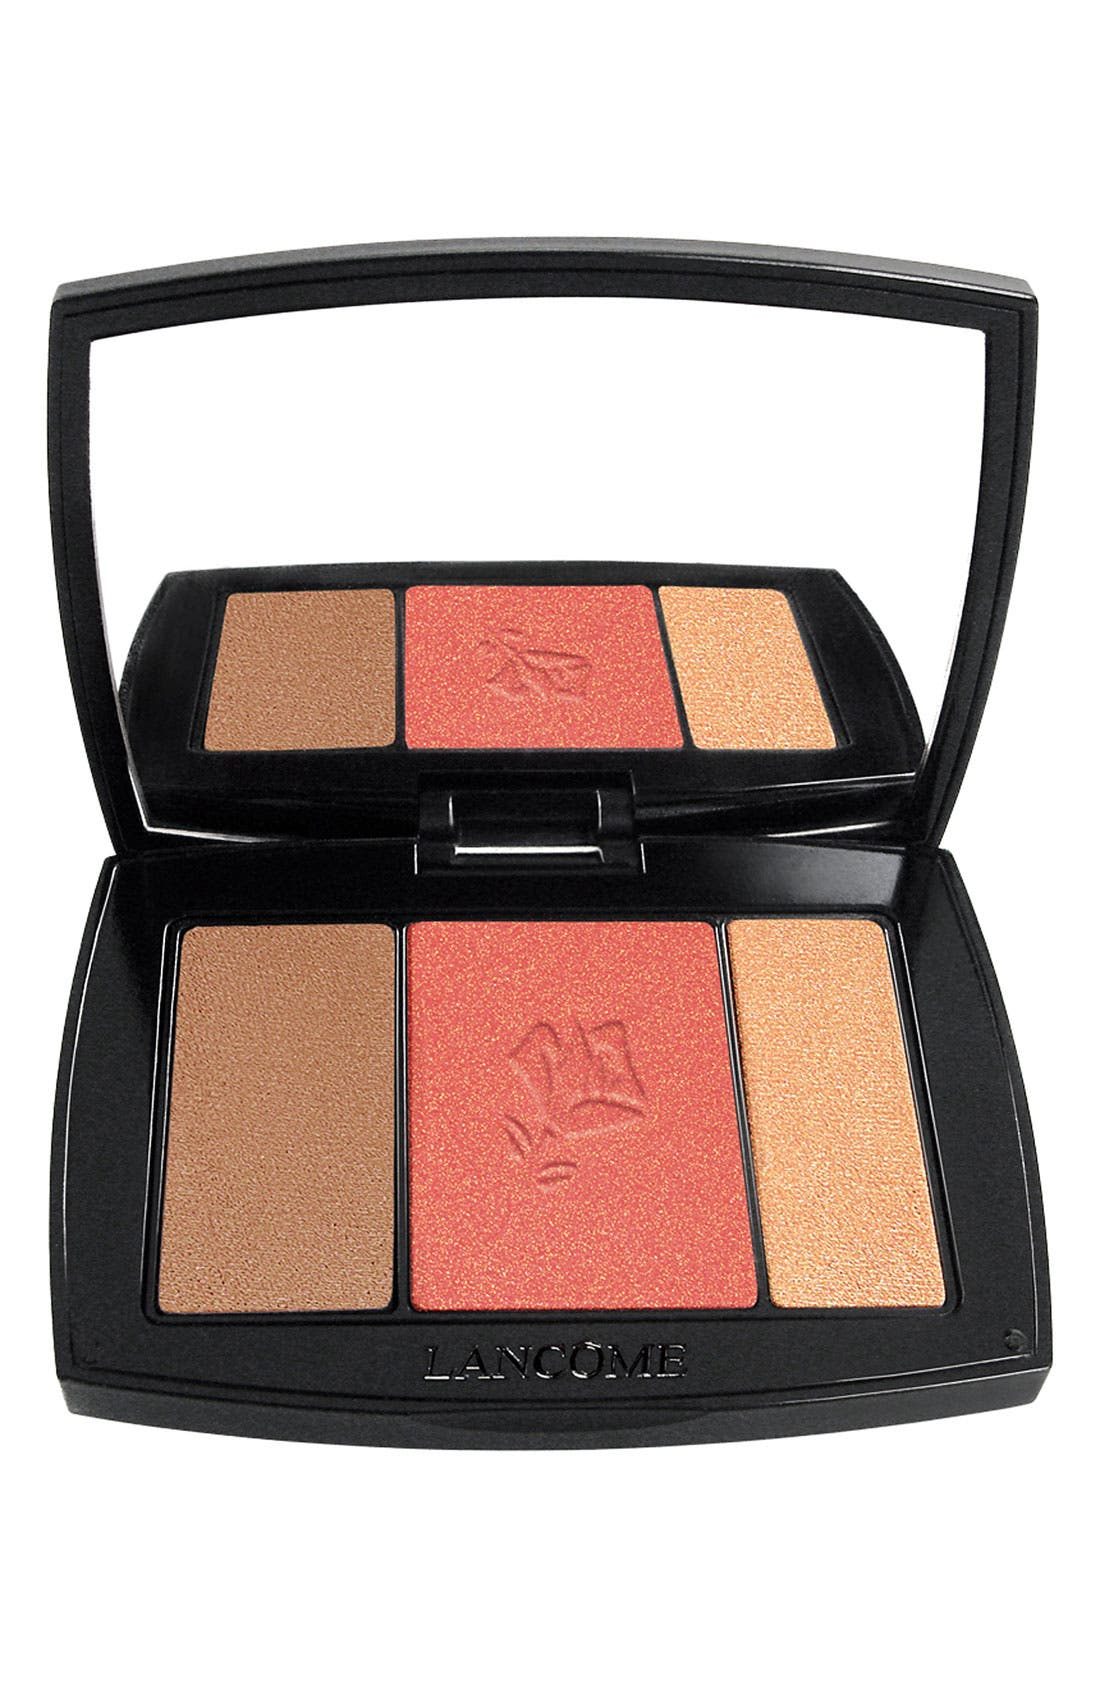 Blush Subtil All-In-One Contour, Blush & Highlighter Palette,                             Main thumbnail 1, color,                             126 NECTAR LACE